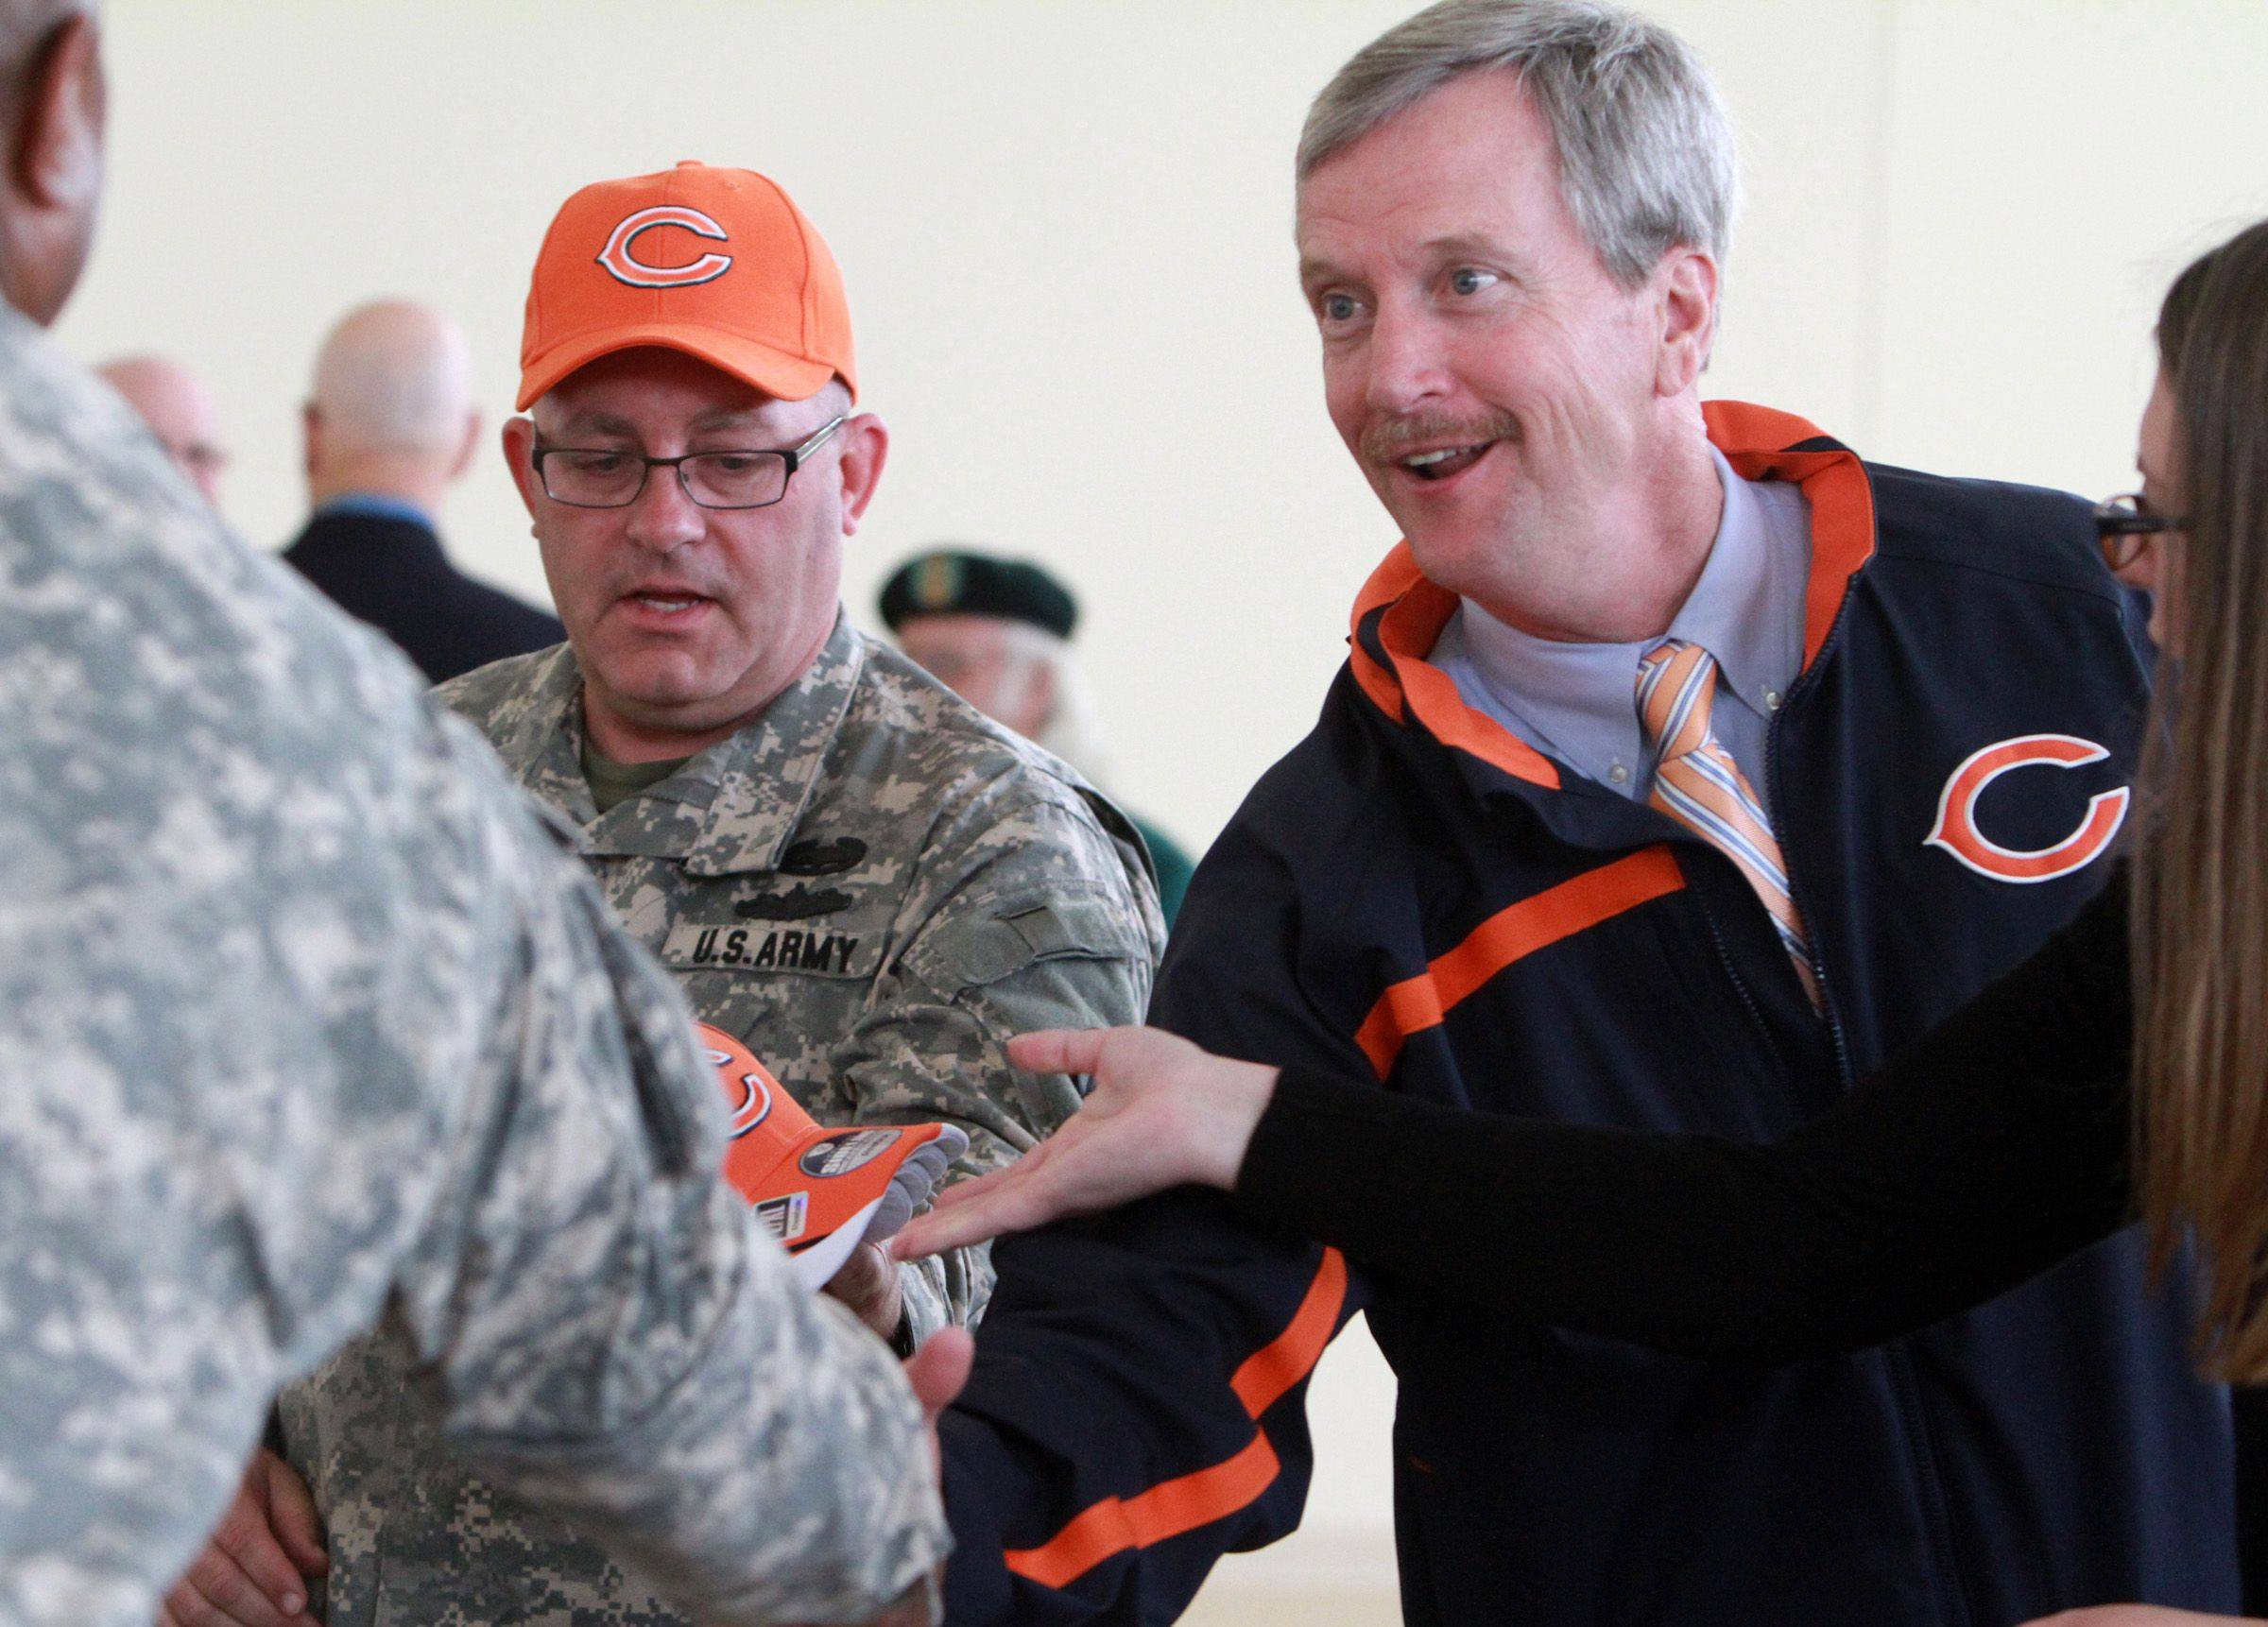 As chairman of the Chicago Bears, George McCaskey believes in being active in the community. On Thursday he delivered Bears hats and flags to personnel with U.S. Reserve 226th Port Management Team after speaking to them during a farewell ceremony at Fort Sheridan. The reservist unit will spend a year serving in Kuwait.